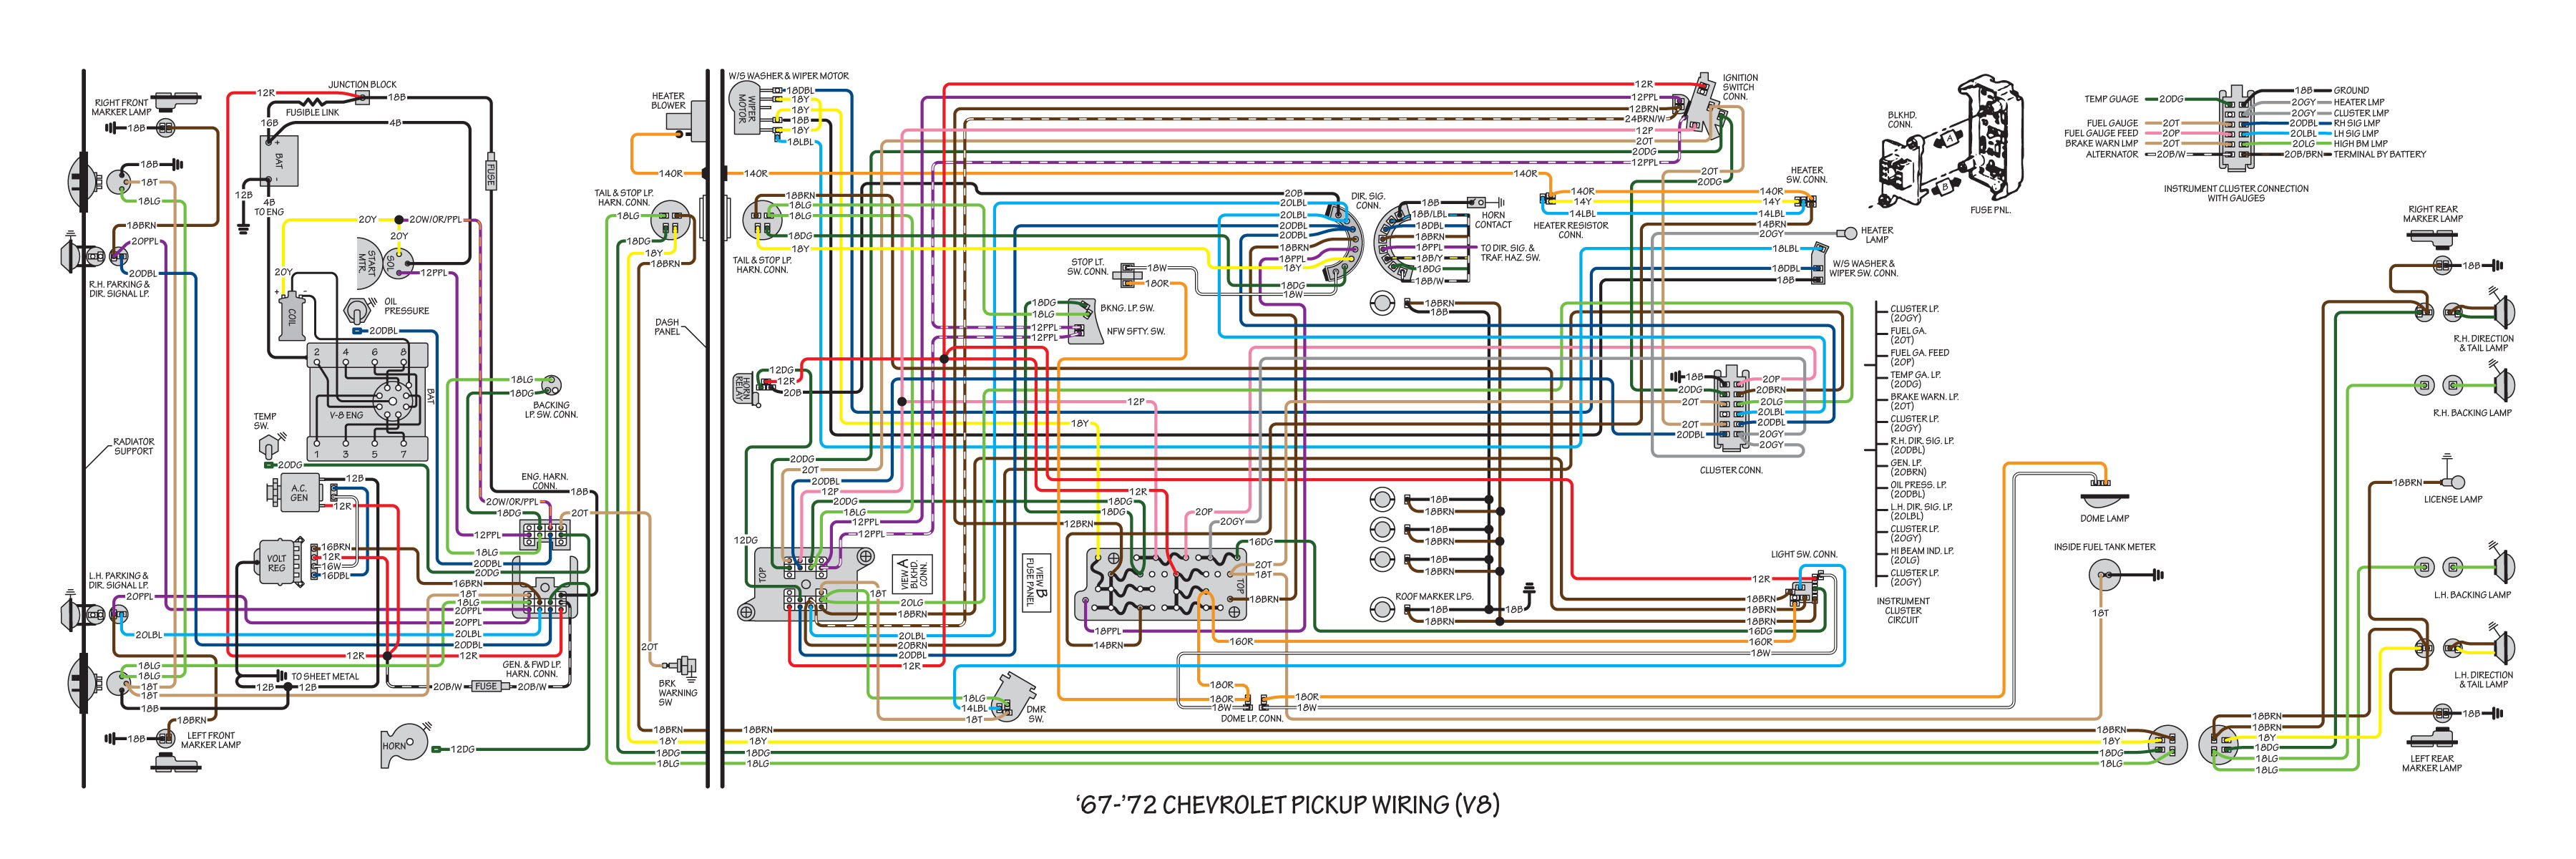 Color Wiring Diagram Finished - Page 13 - The 1947